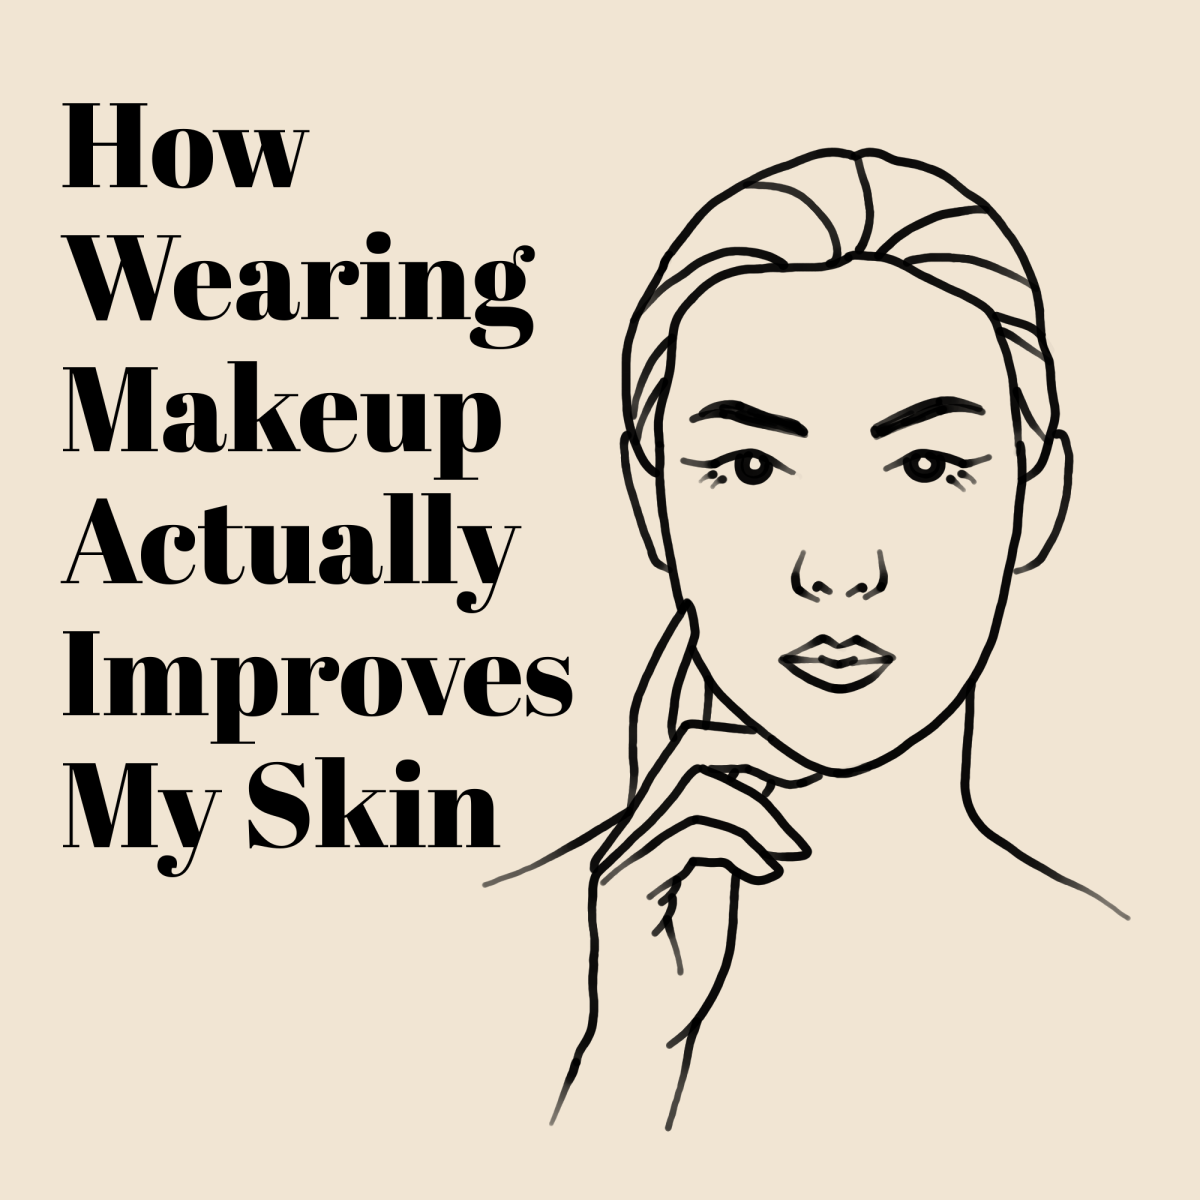 """A line art drawing of a woman with makeup on, with the text """"How Wearing Makeup Actually Improves My Skin"""" written to the side"""